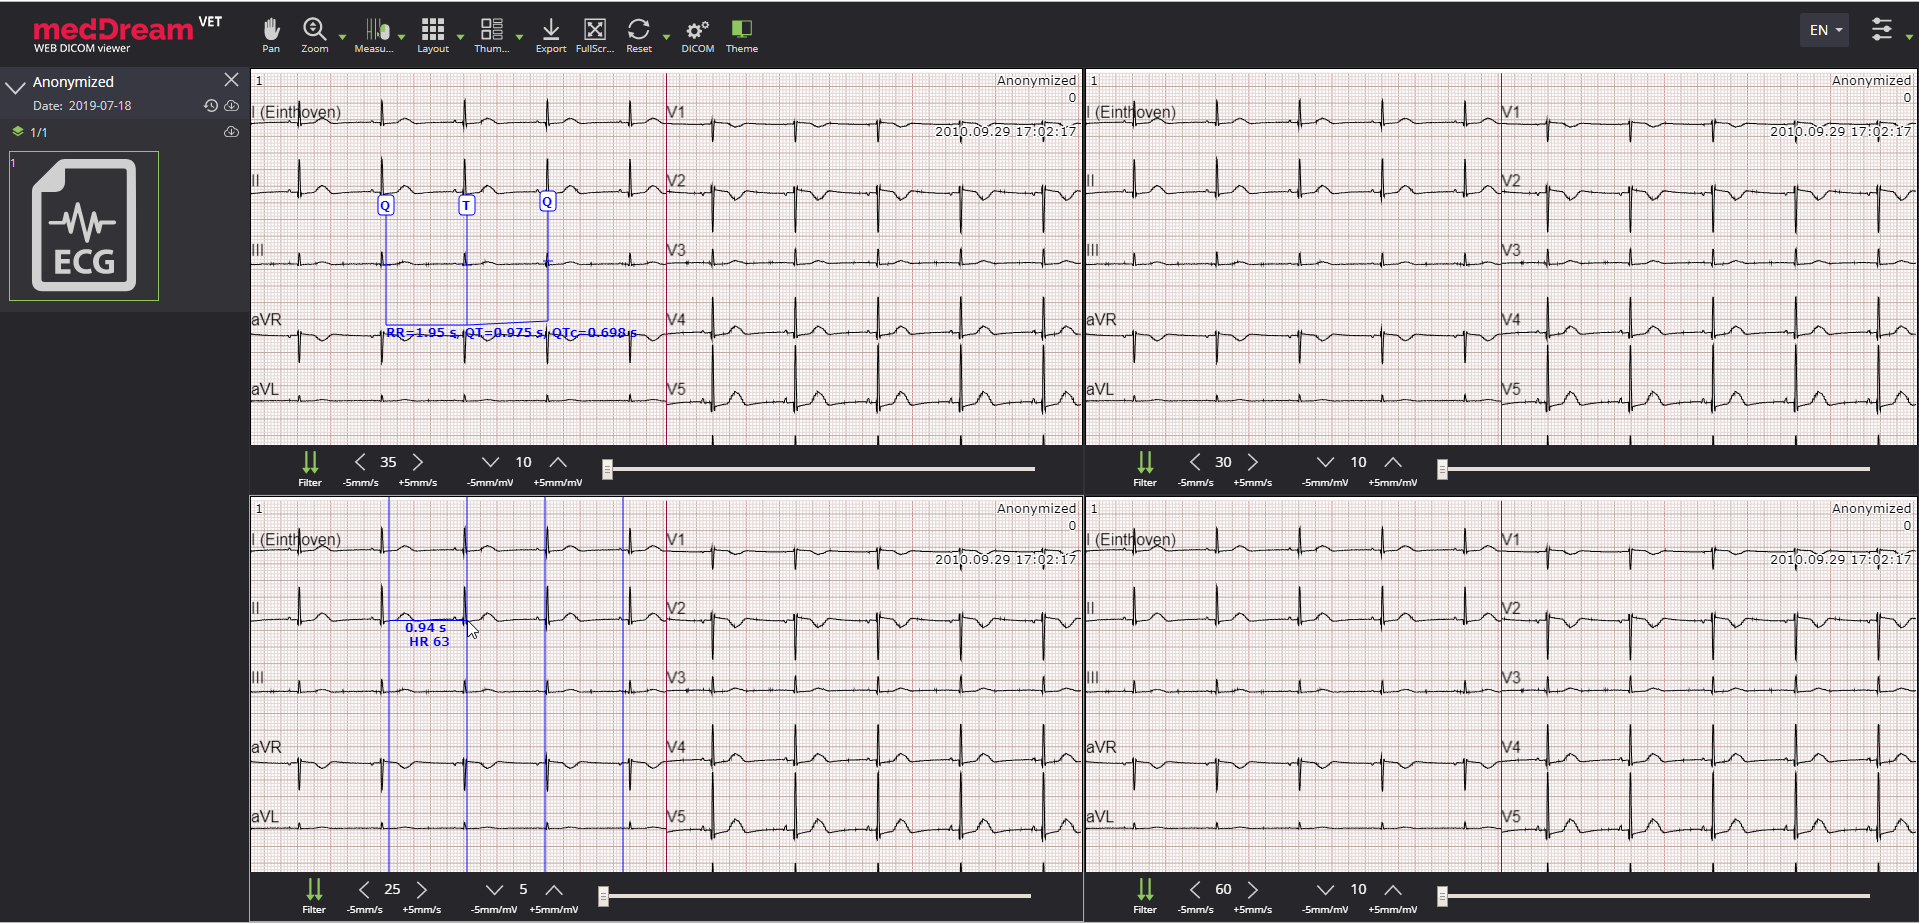 MedDream VET Dicom Viewer ECG